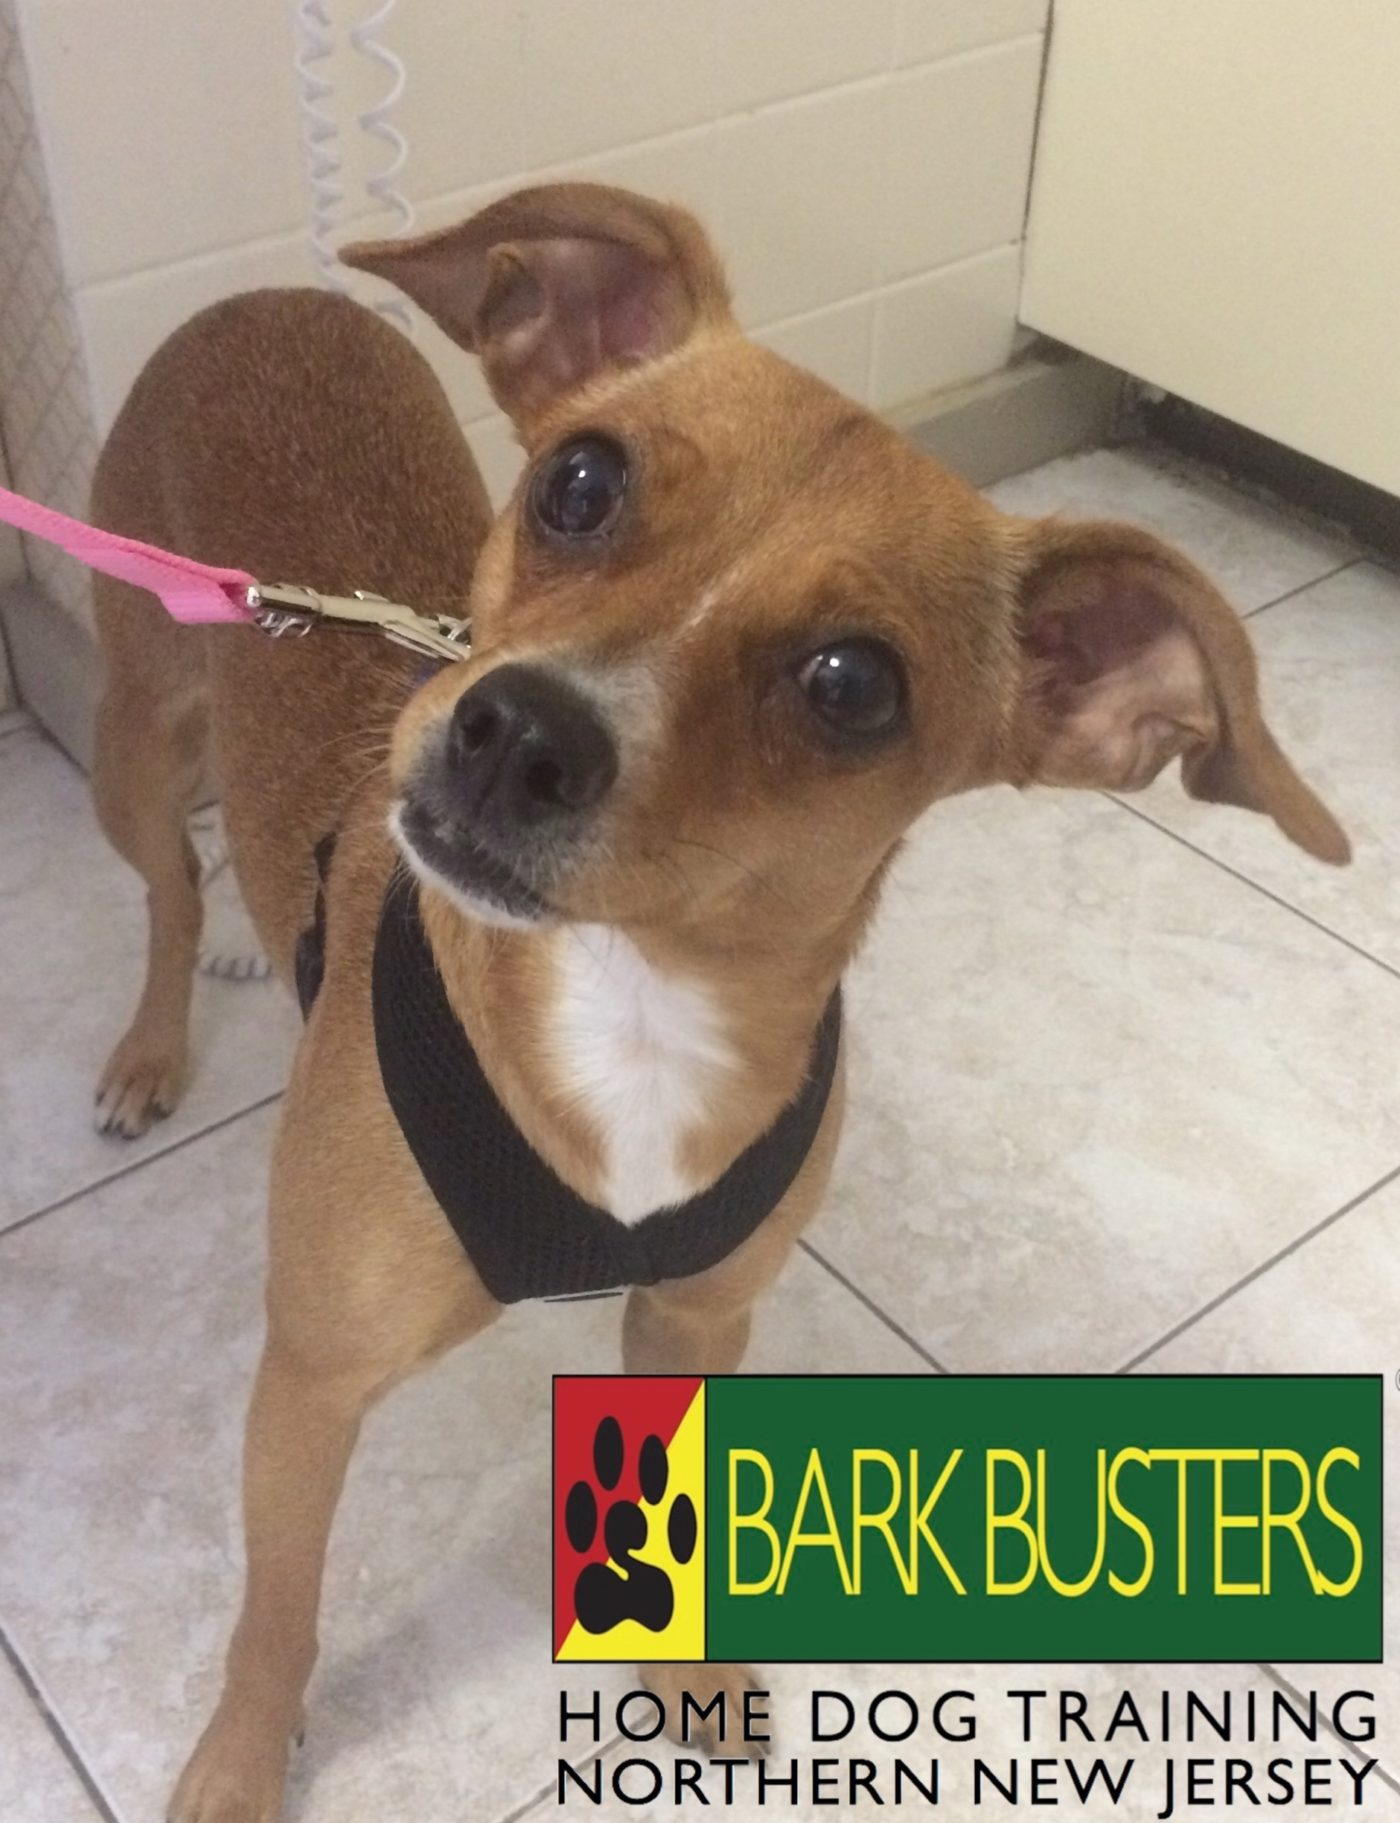 #BarkBusters #dogtrainer #dogtrainingNorthernNewJersey #speakdog #dogs #puppies #HappyDogsHappyFamilies #Chihuahua #dogsOfBarkBusters #FortLee